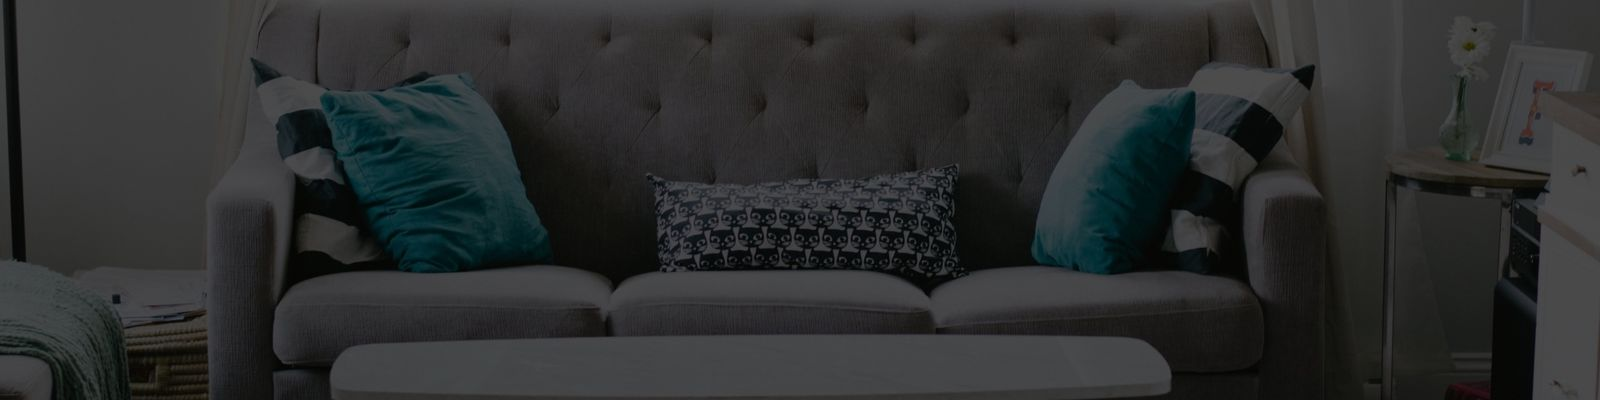 upholstery cleaning pros in Pretoria